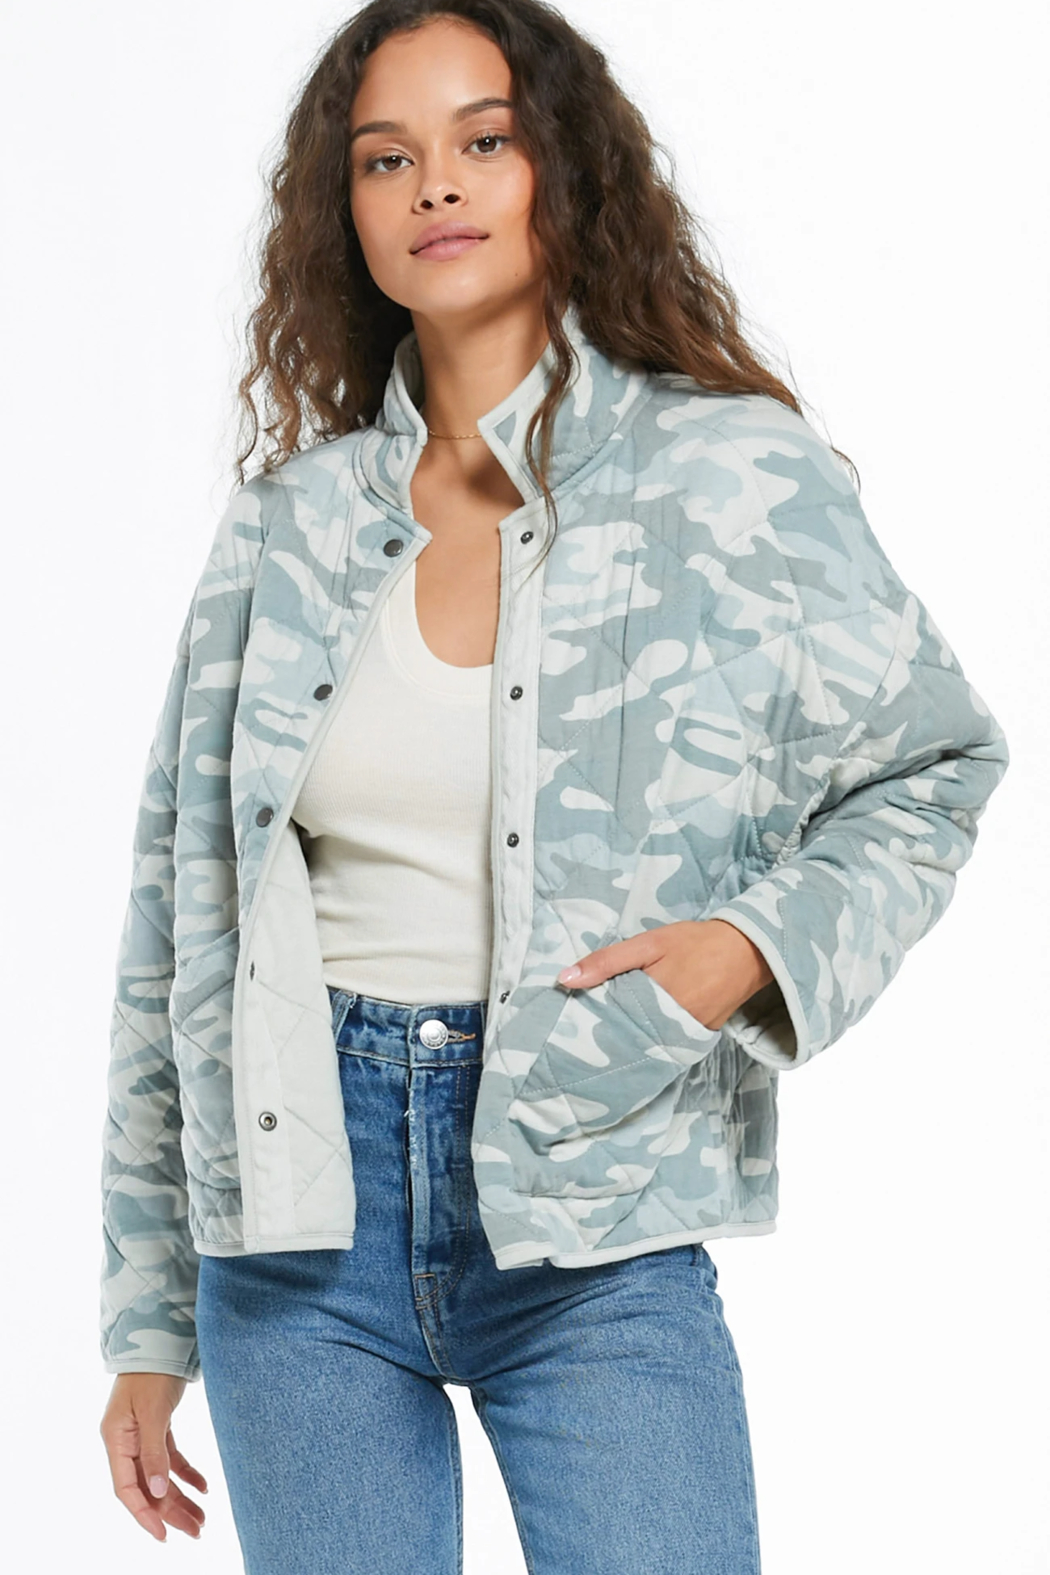 z supply Camo Quilted Jacket - Main Image